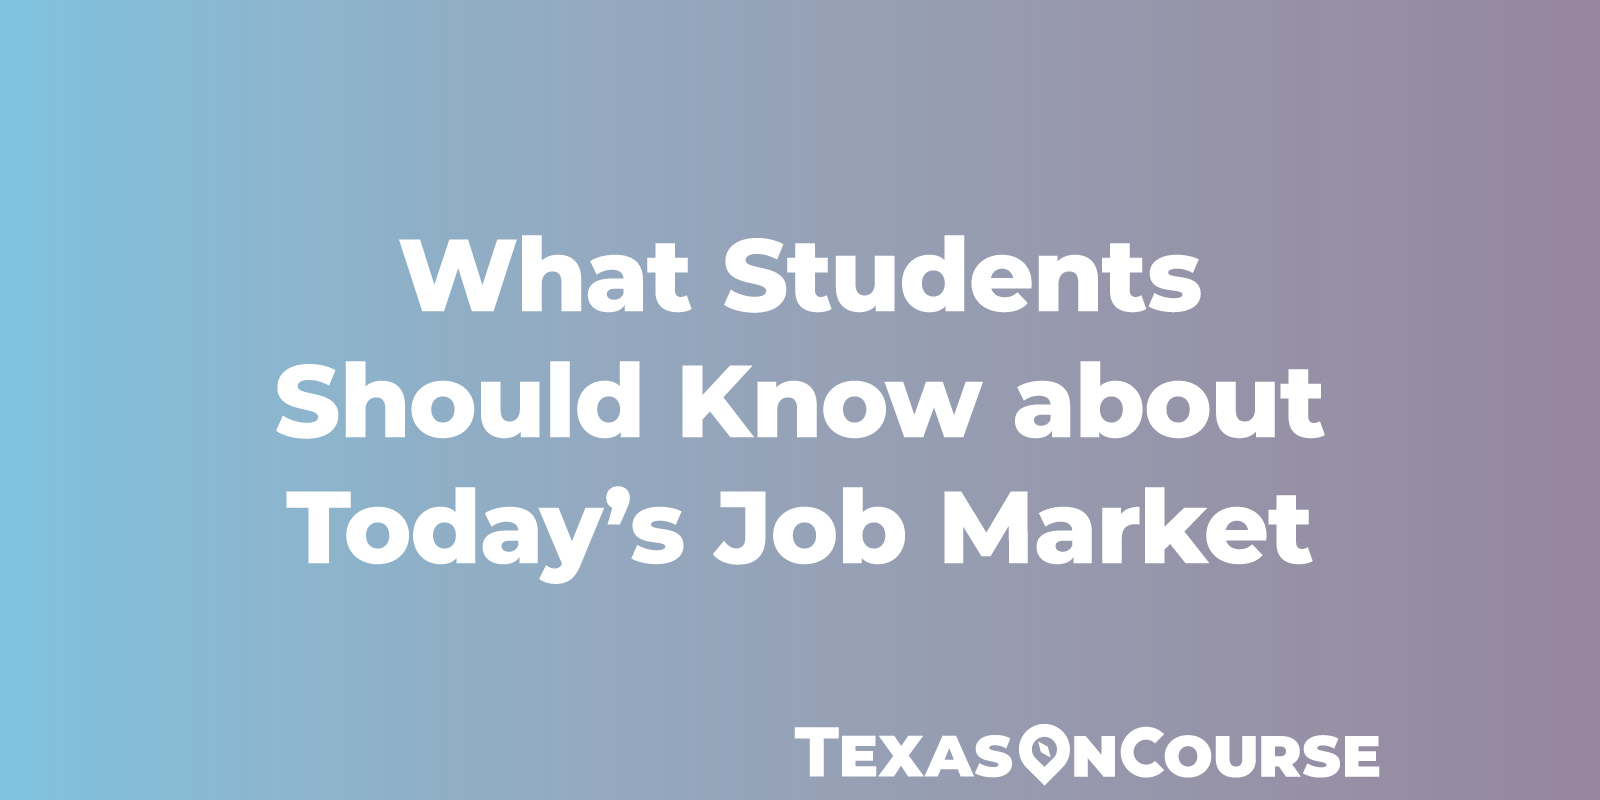 What Students Should Know about Today's Job Market